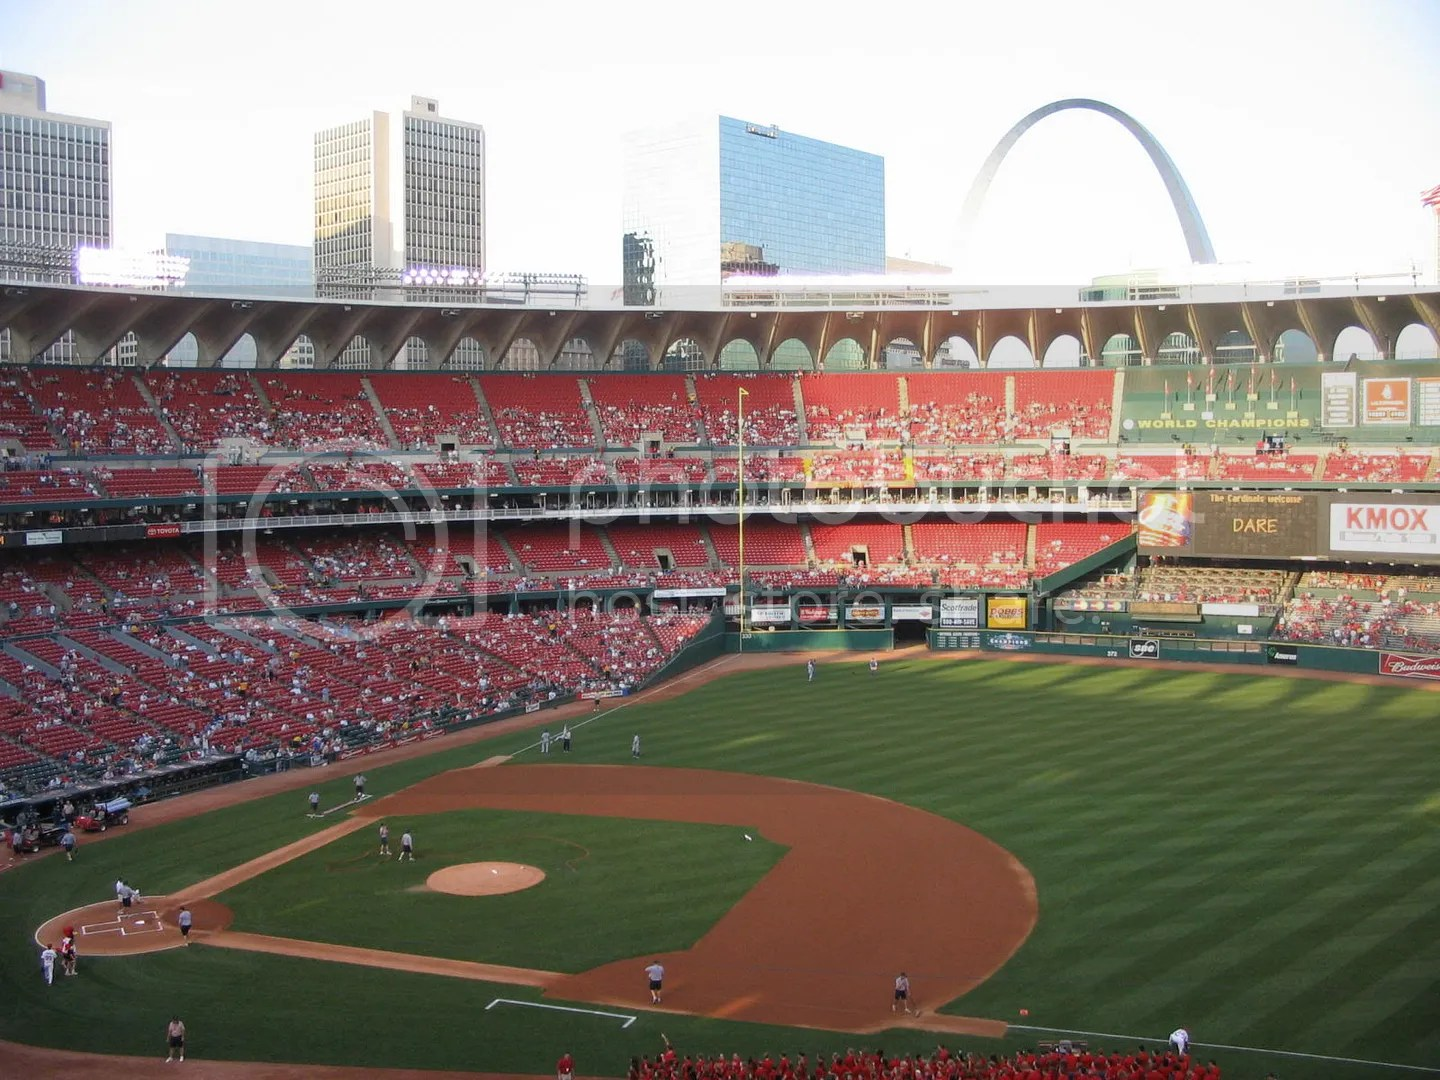 30ab.jpg PREGAME, AND THE BIG ARCH LOOMS OVER IT'S 96 L'IL ONES picture by dreispics